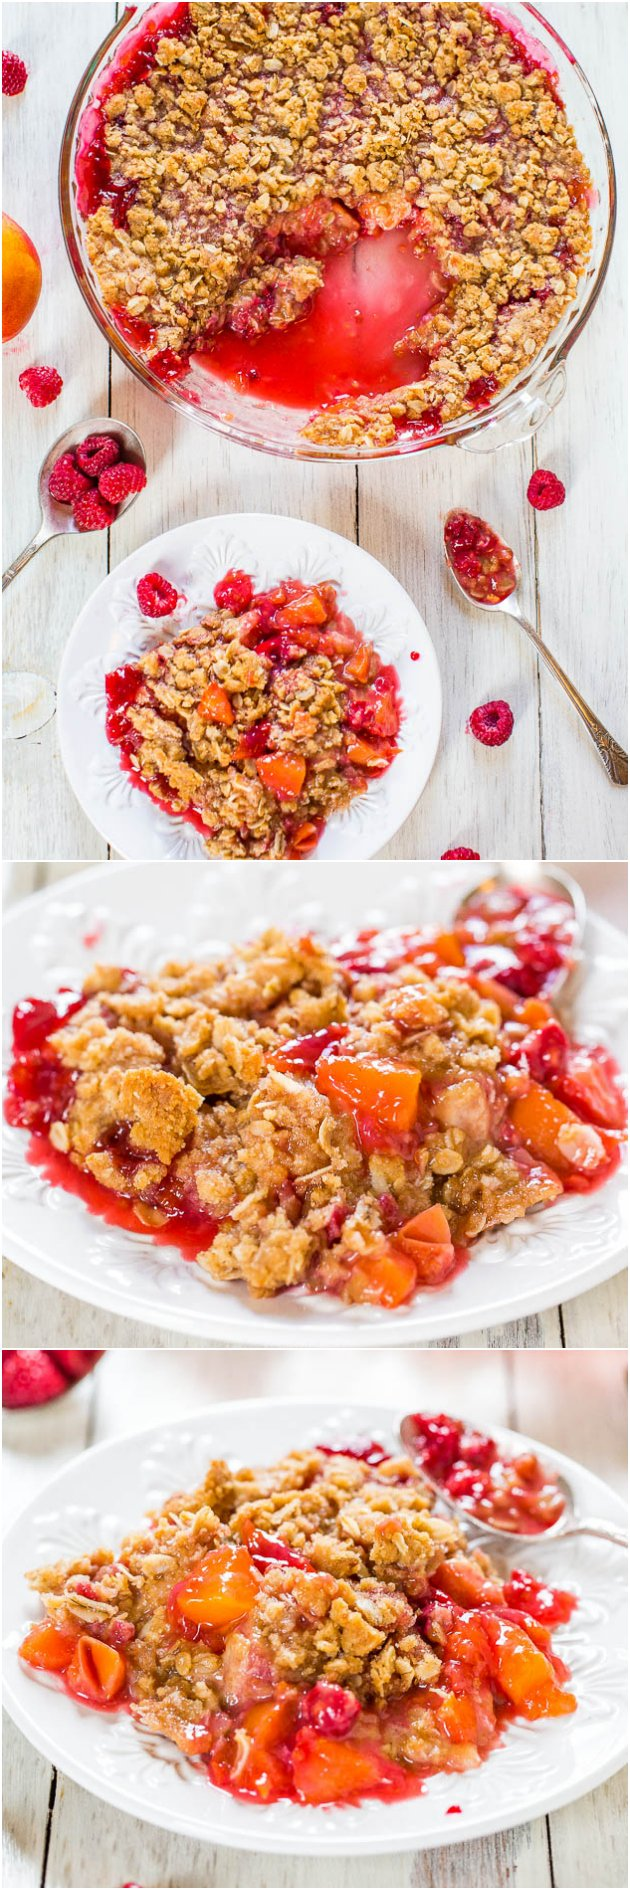 Raspberry Peach Crisp - Plump raspberries, juicy peaches & a crunchy oat topping make this healthier summer treat totally irresistible!